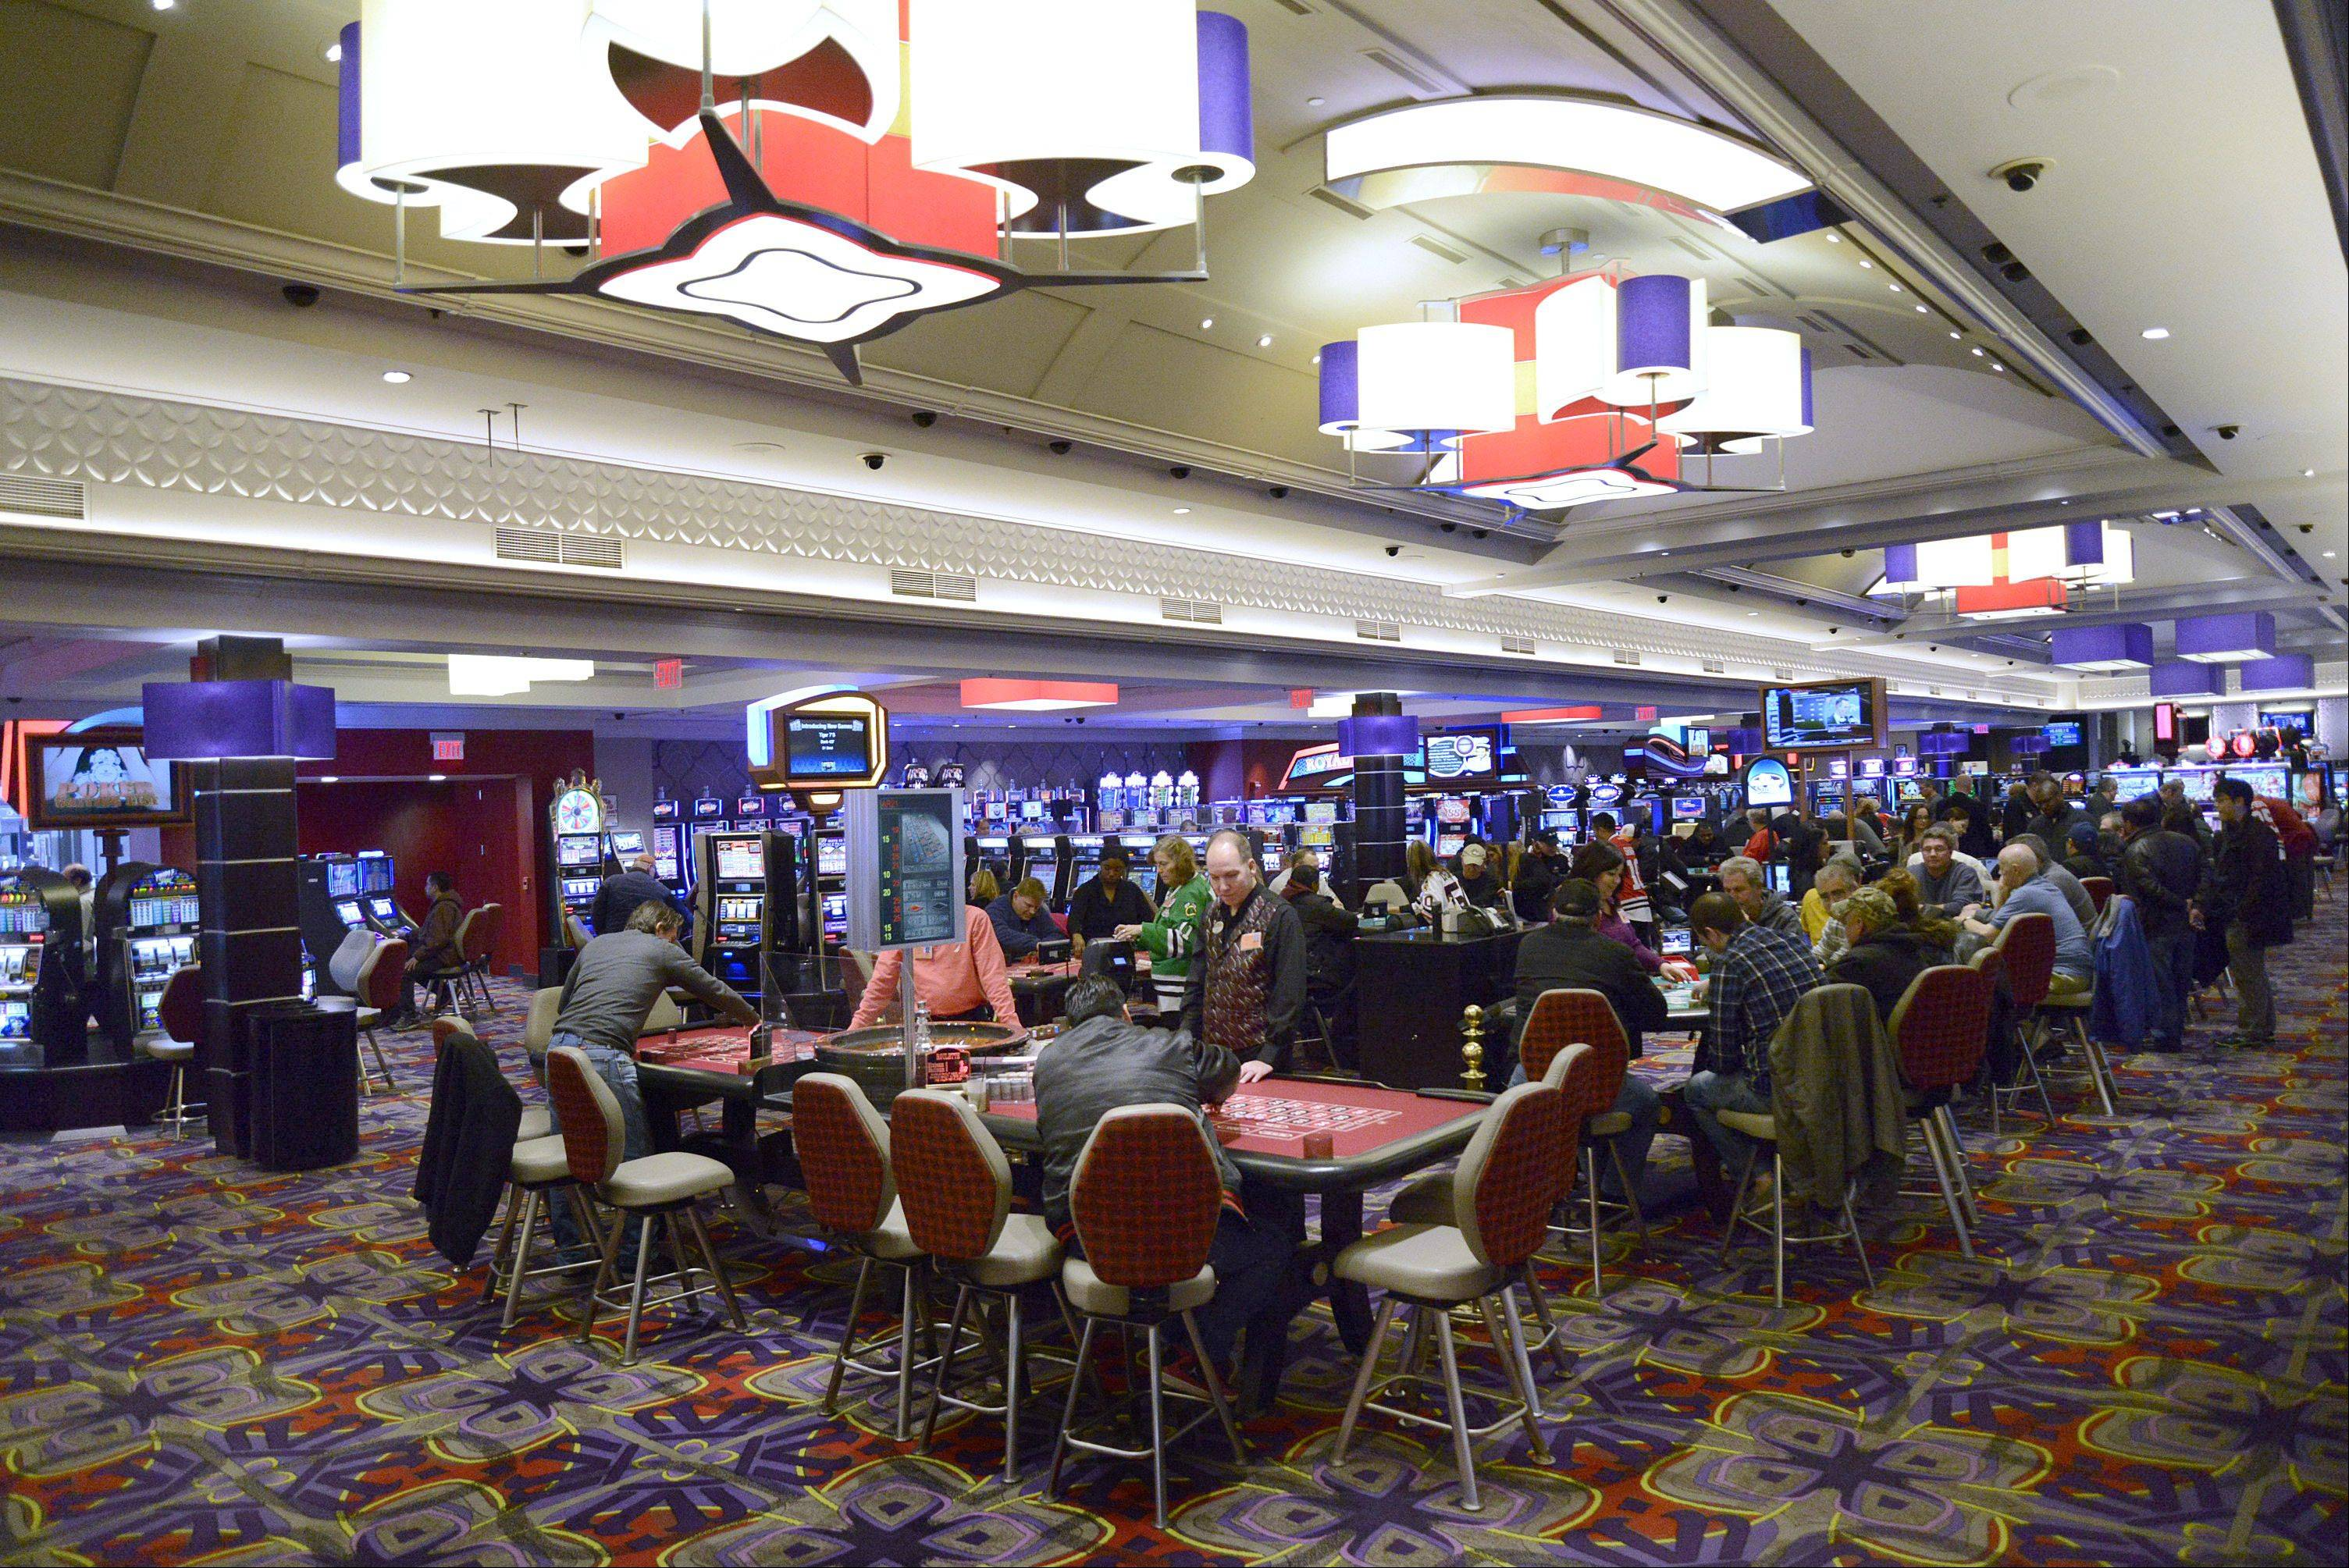 The Grand Victoria Casino in Elgin has finished renovations in its casino area. This is on the main casino floor.